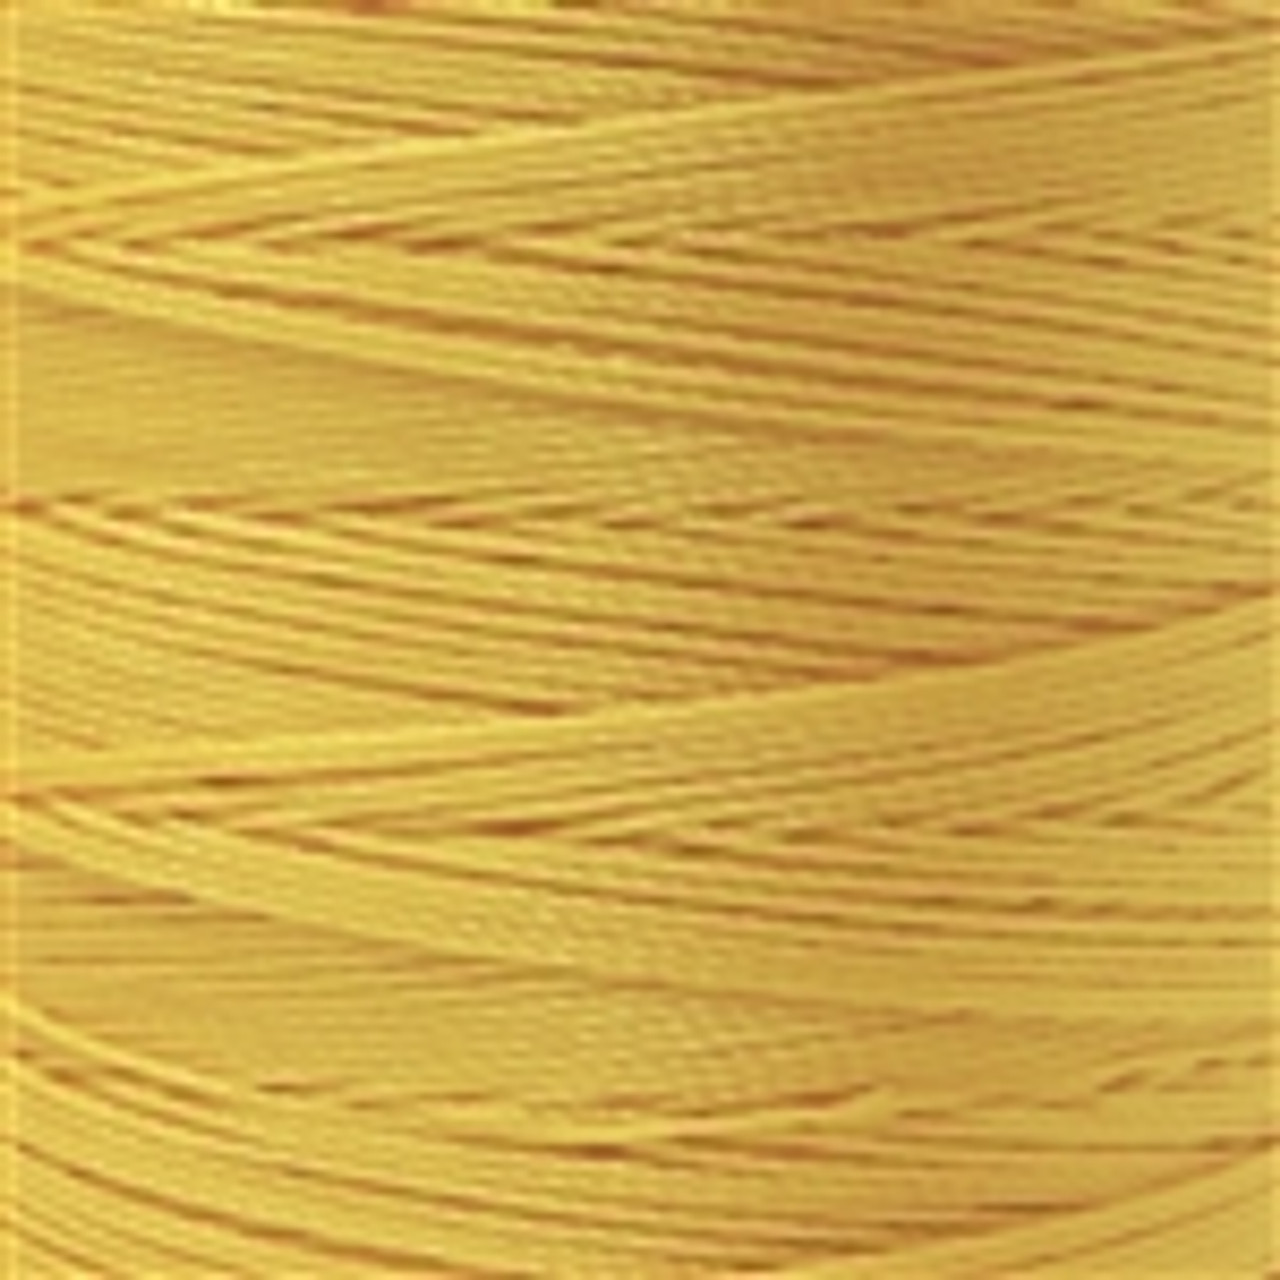 QTC T-270 Bonded Nylon Thread Forsythia (Yellow) 8 oz Spool